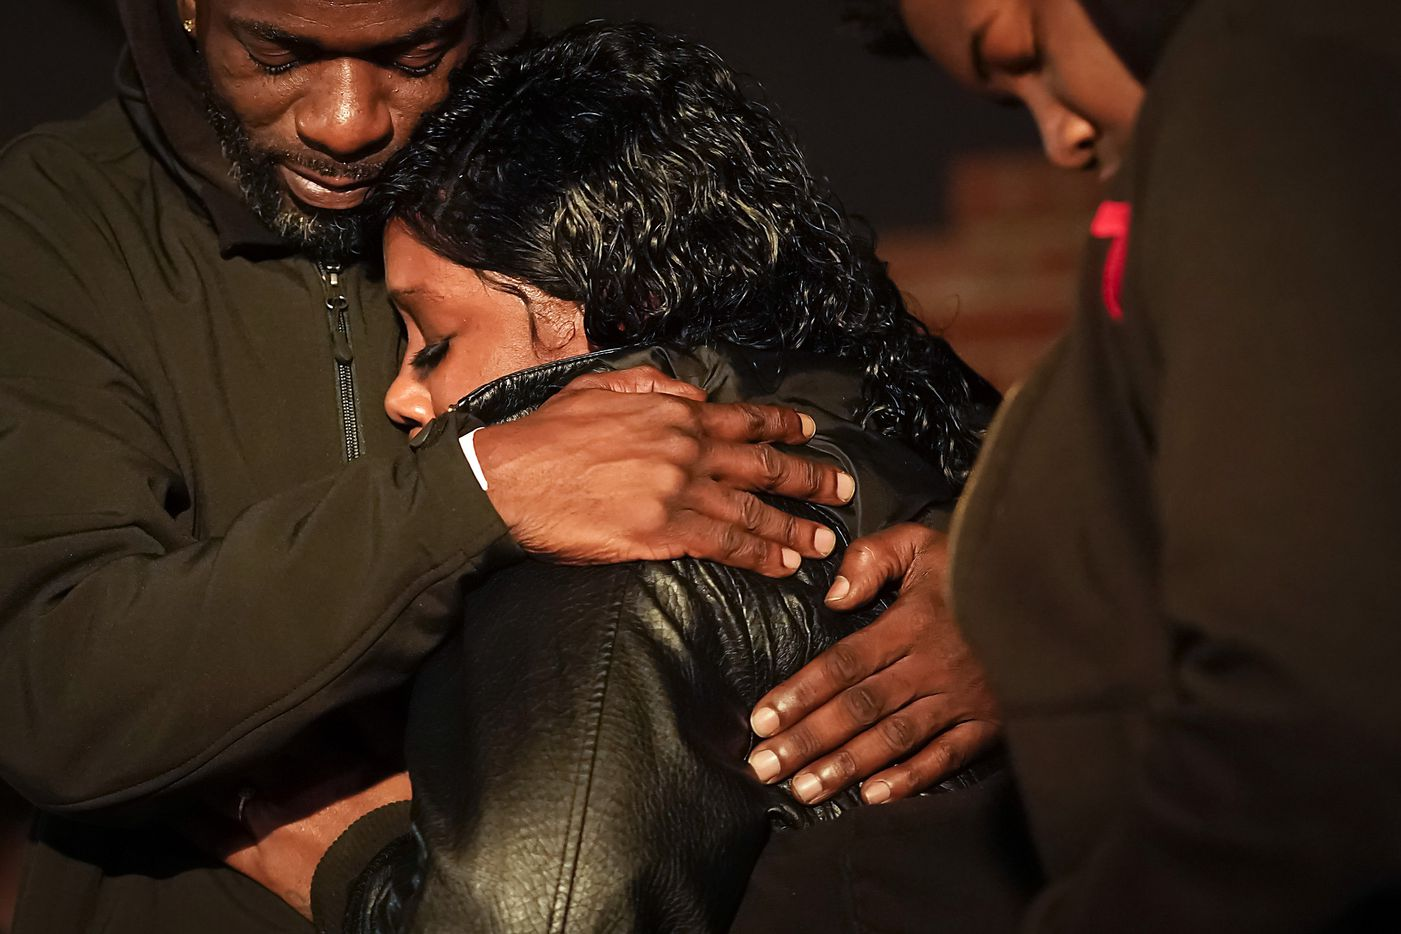 """Monique Mitchell is consoled during a vigil for her son Marc """"Flea"""" Strickland, an 18-year-old victim of a shooting at Dallas ISD basketball game, at Bushman Park on Sunday, Jan. 19, 2020."""